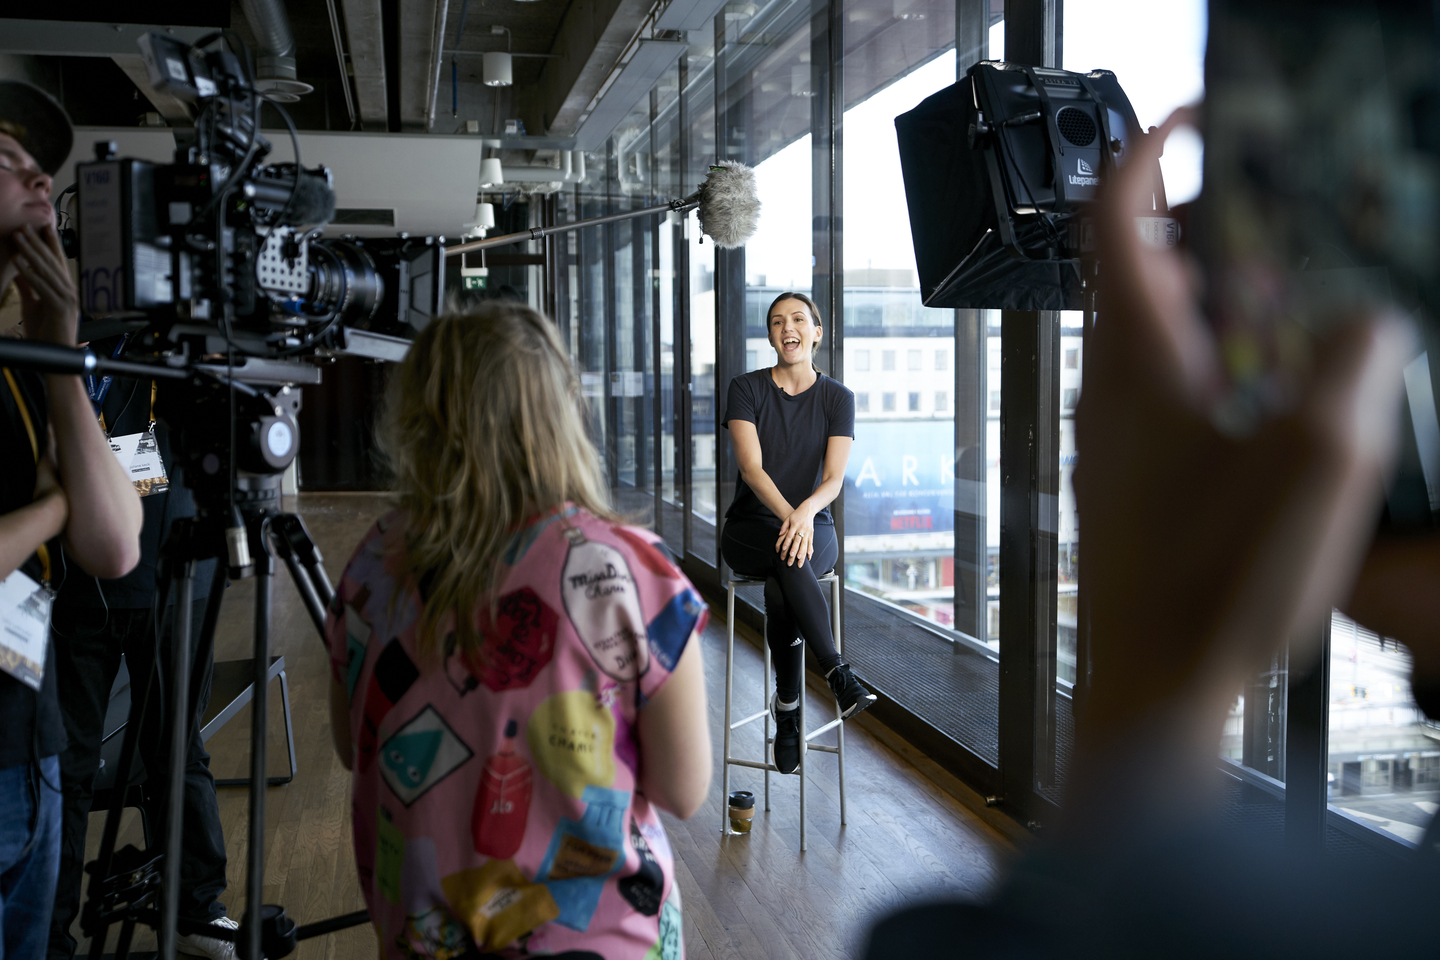 An interview with Adriene Mishler. Photo by Richard Pflaume/Daimler AG